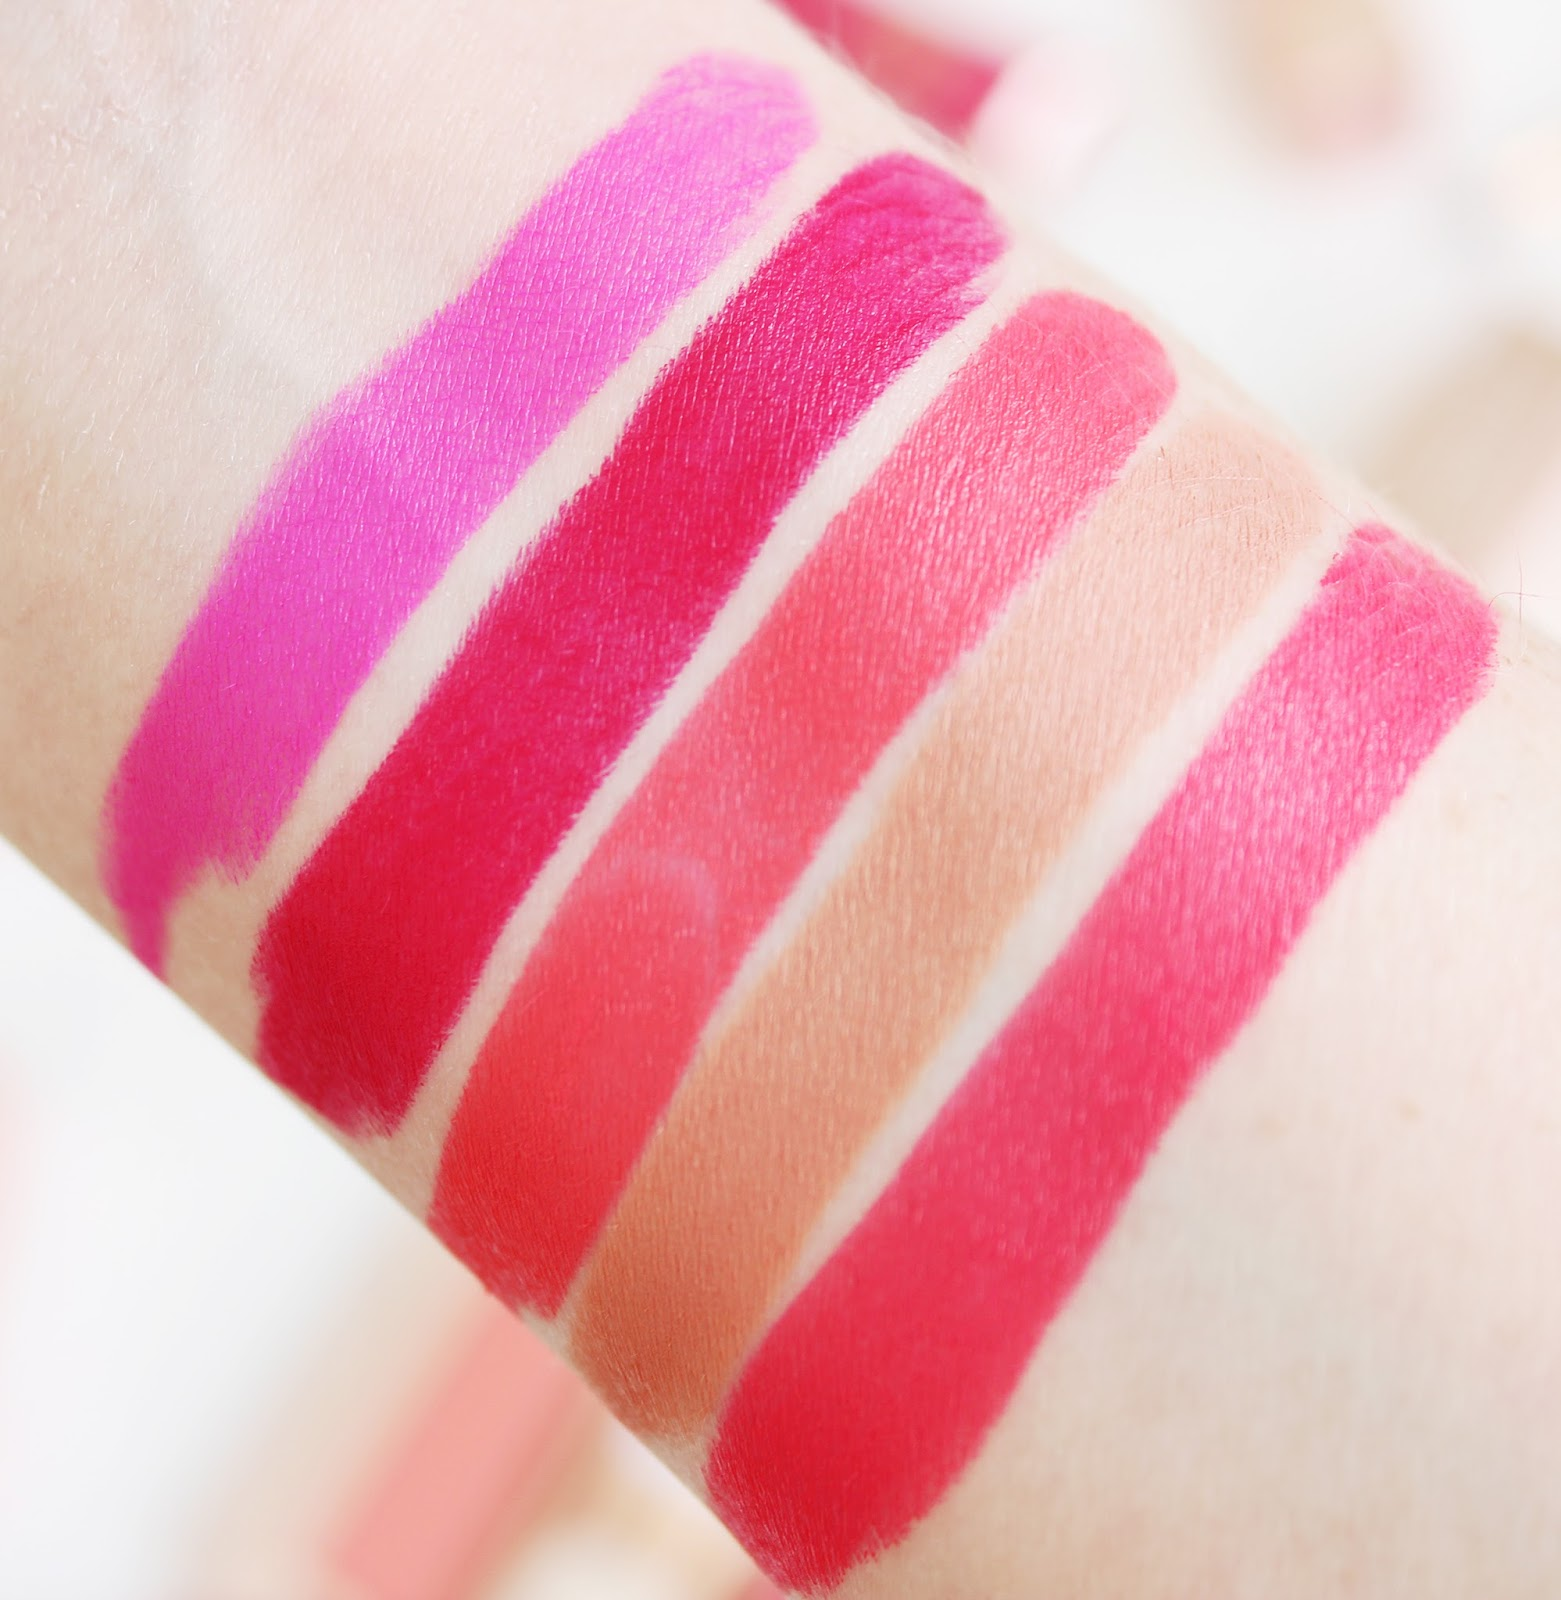 Models Own Gilt collection matte lipstick swatches